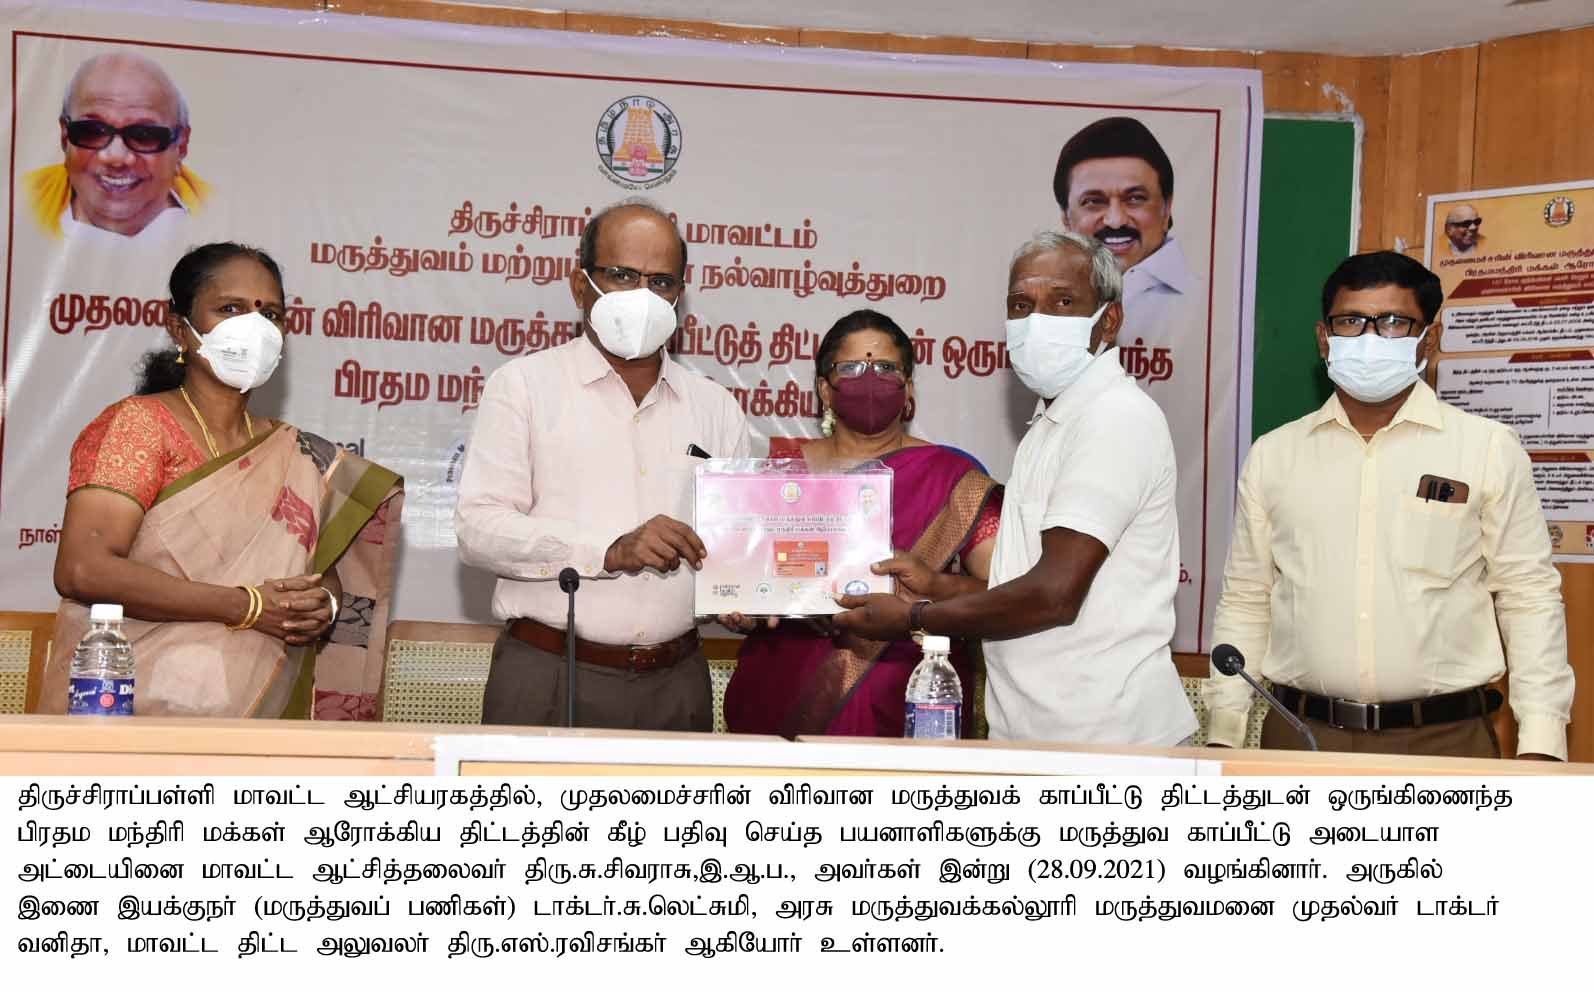 District Collector Issued Health Insurances Scheme Identity Cards to Beneficiary on 28.09.2021